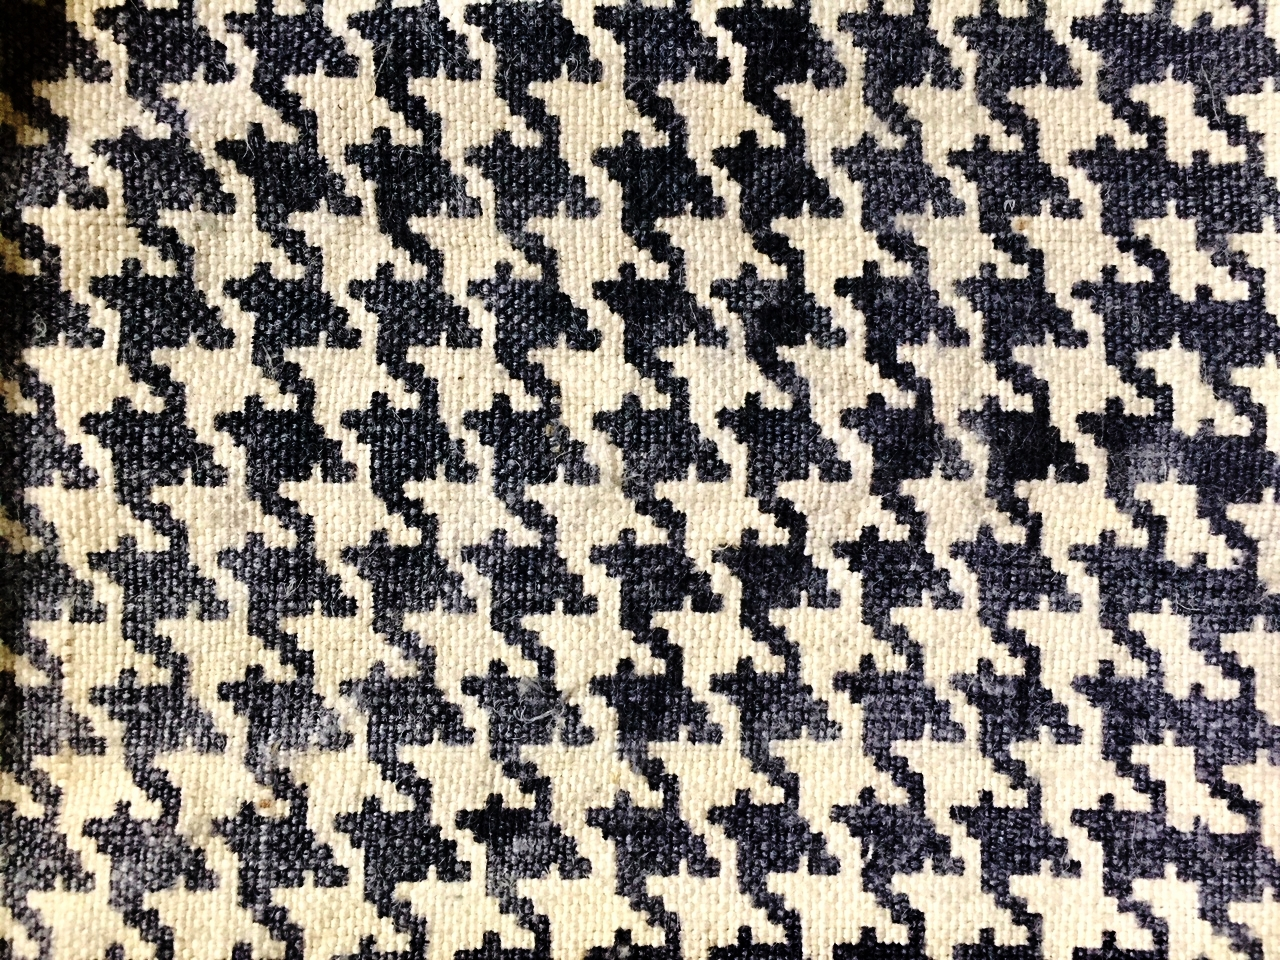 Houndstooth P004 - Chic. Winter coats and summer blazers. A lining of London, a hint of Paris. A picnic.